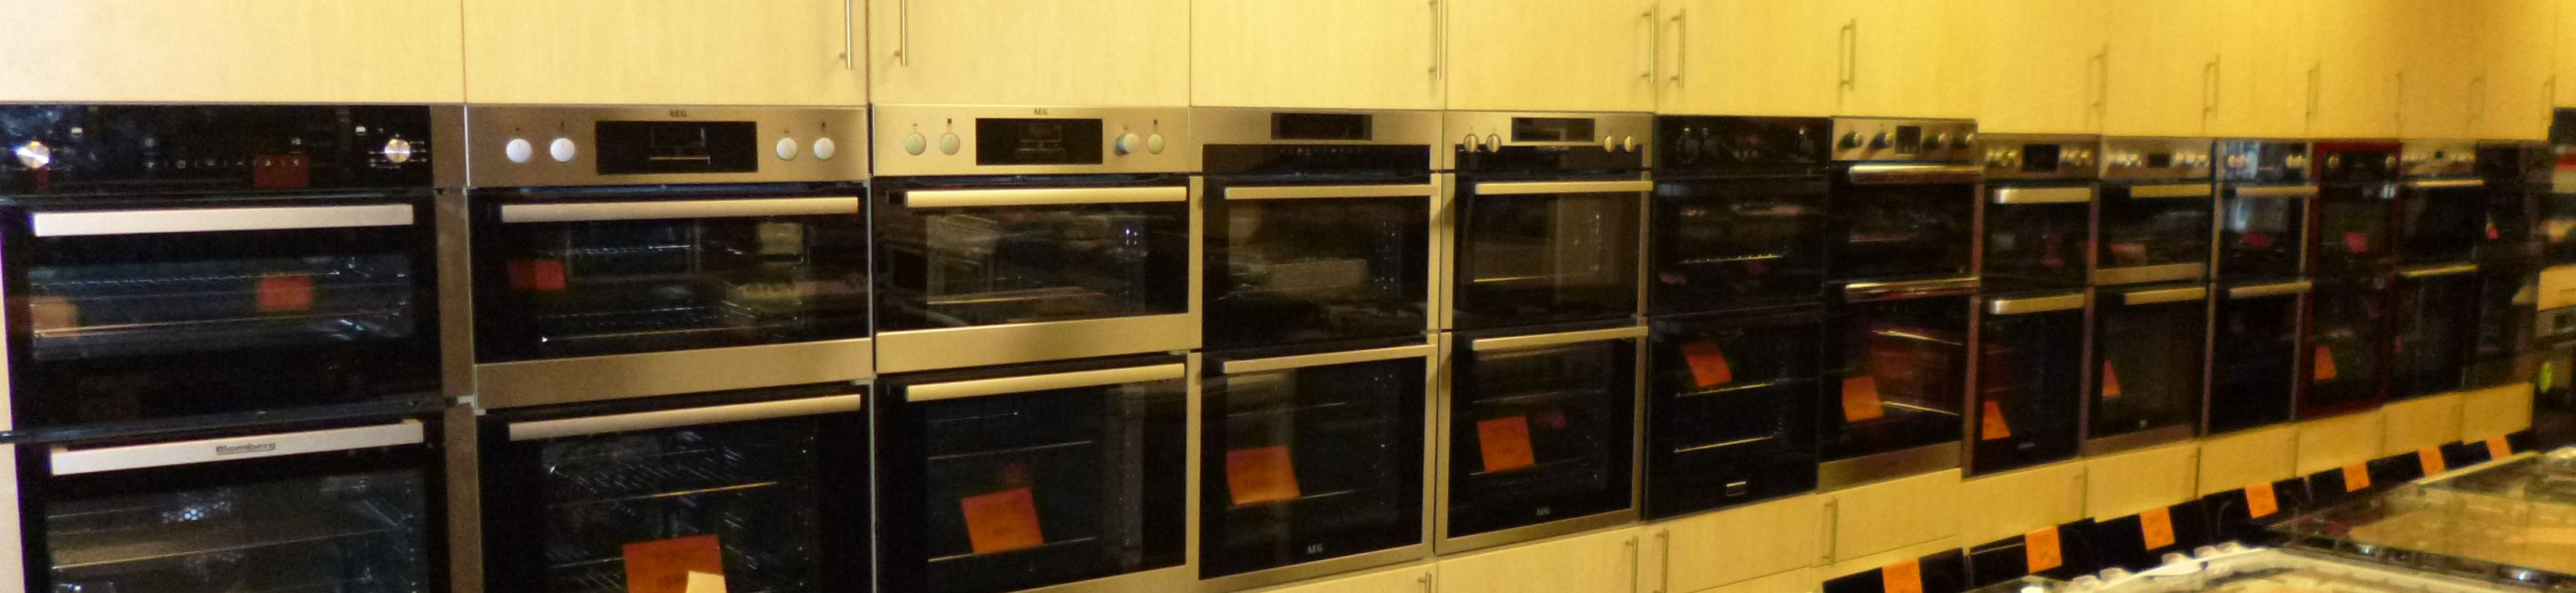 Electric Built-In Double Ovens